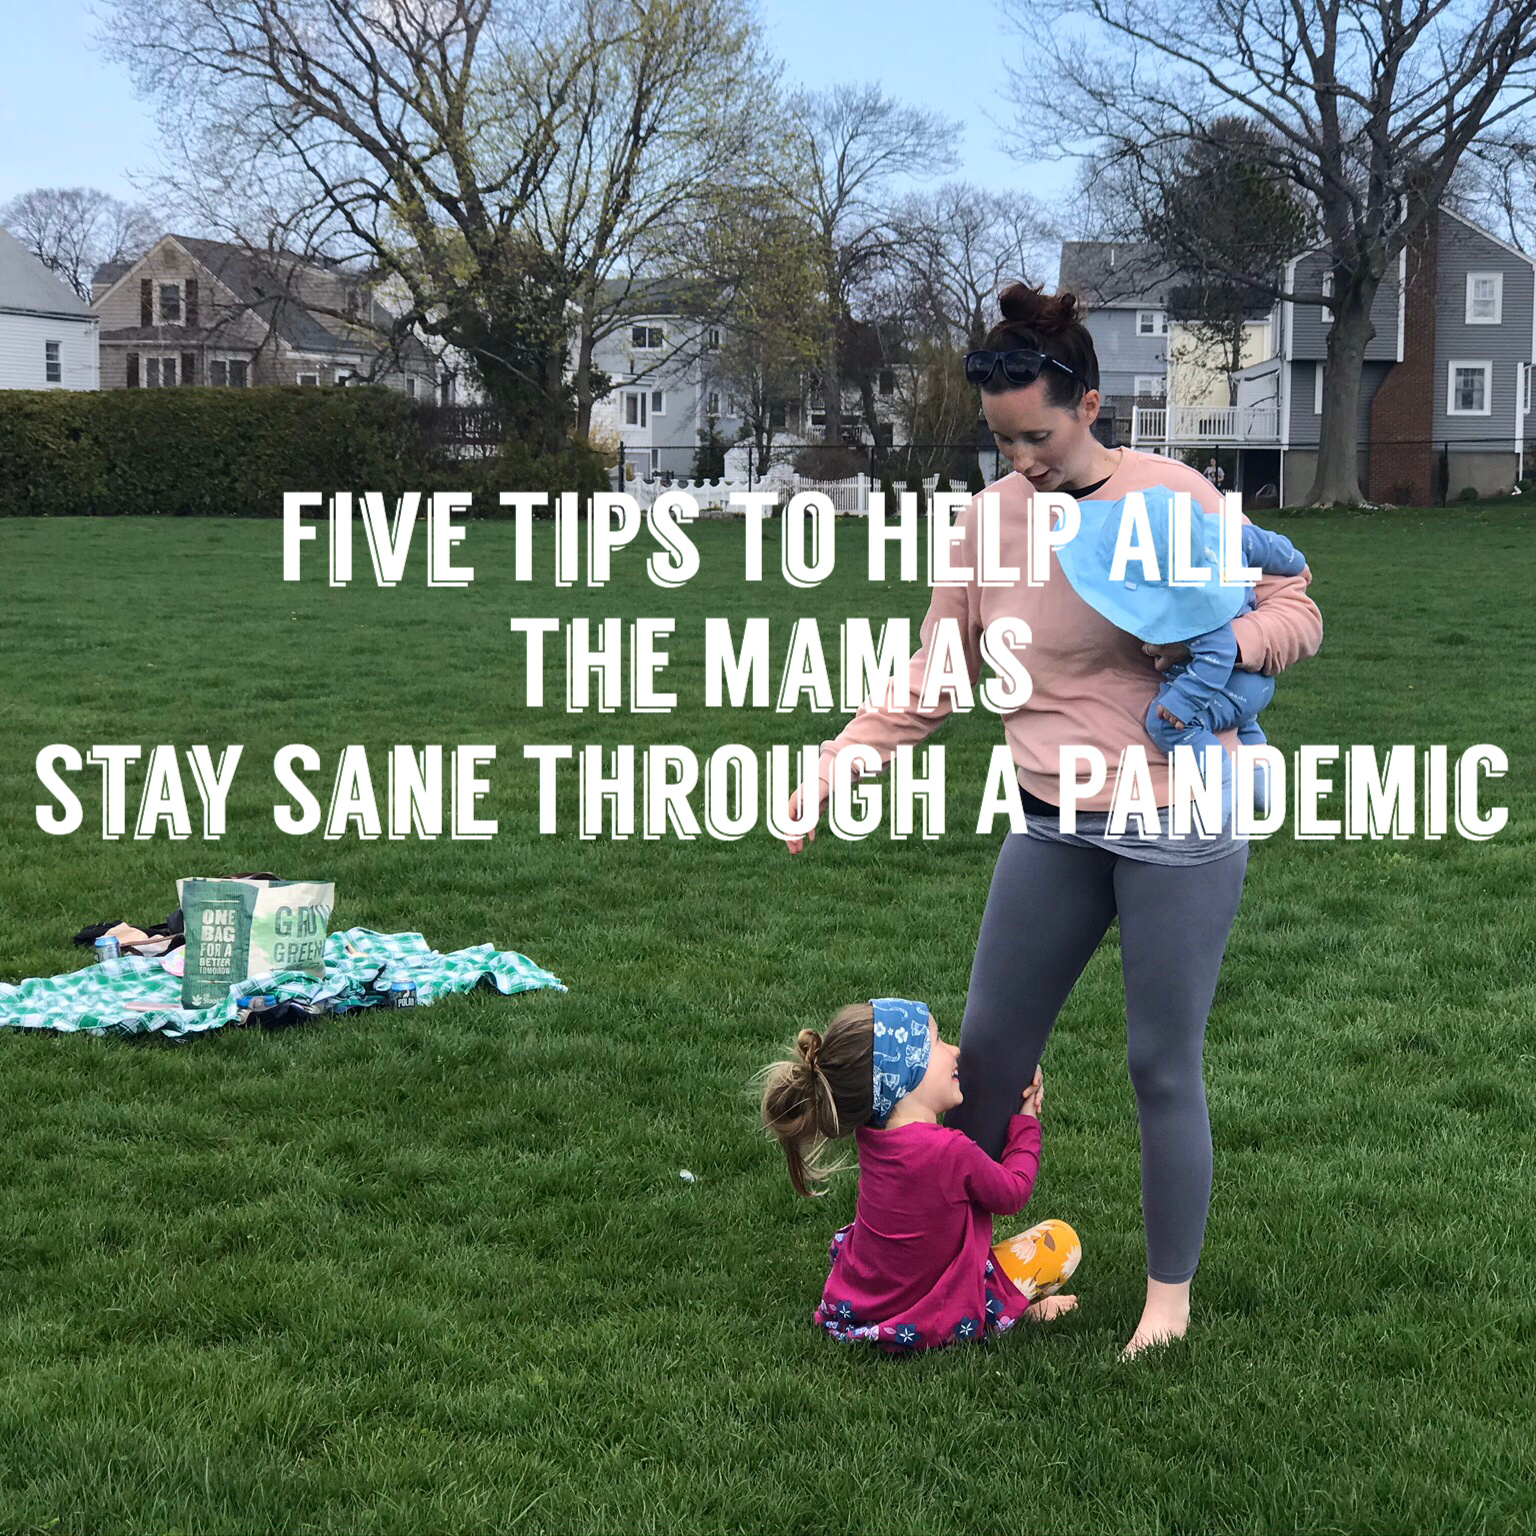 Five Tips To Help All The Mamas Stay Sane Through A Pandemic